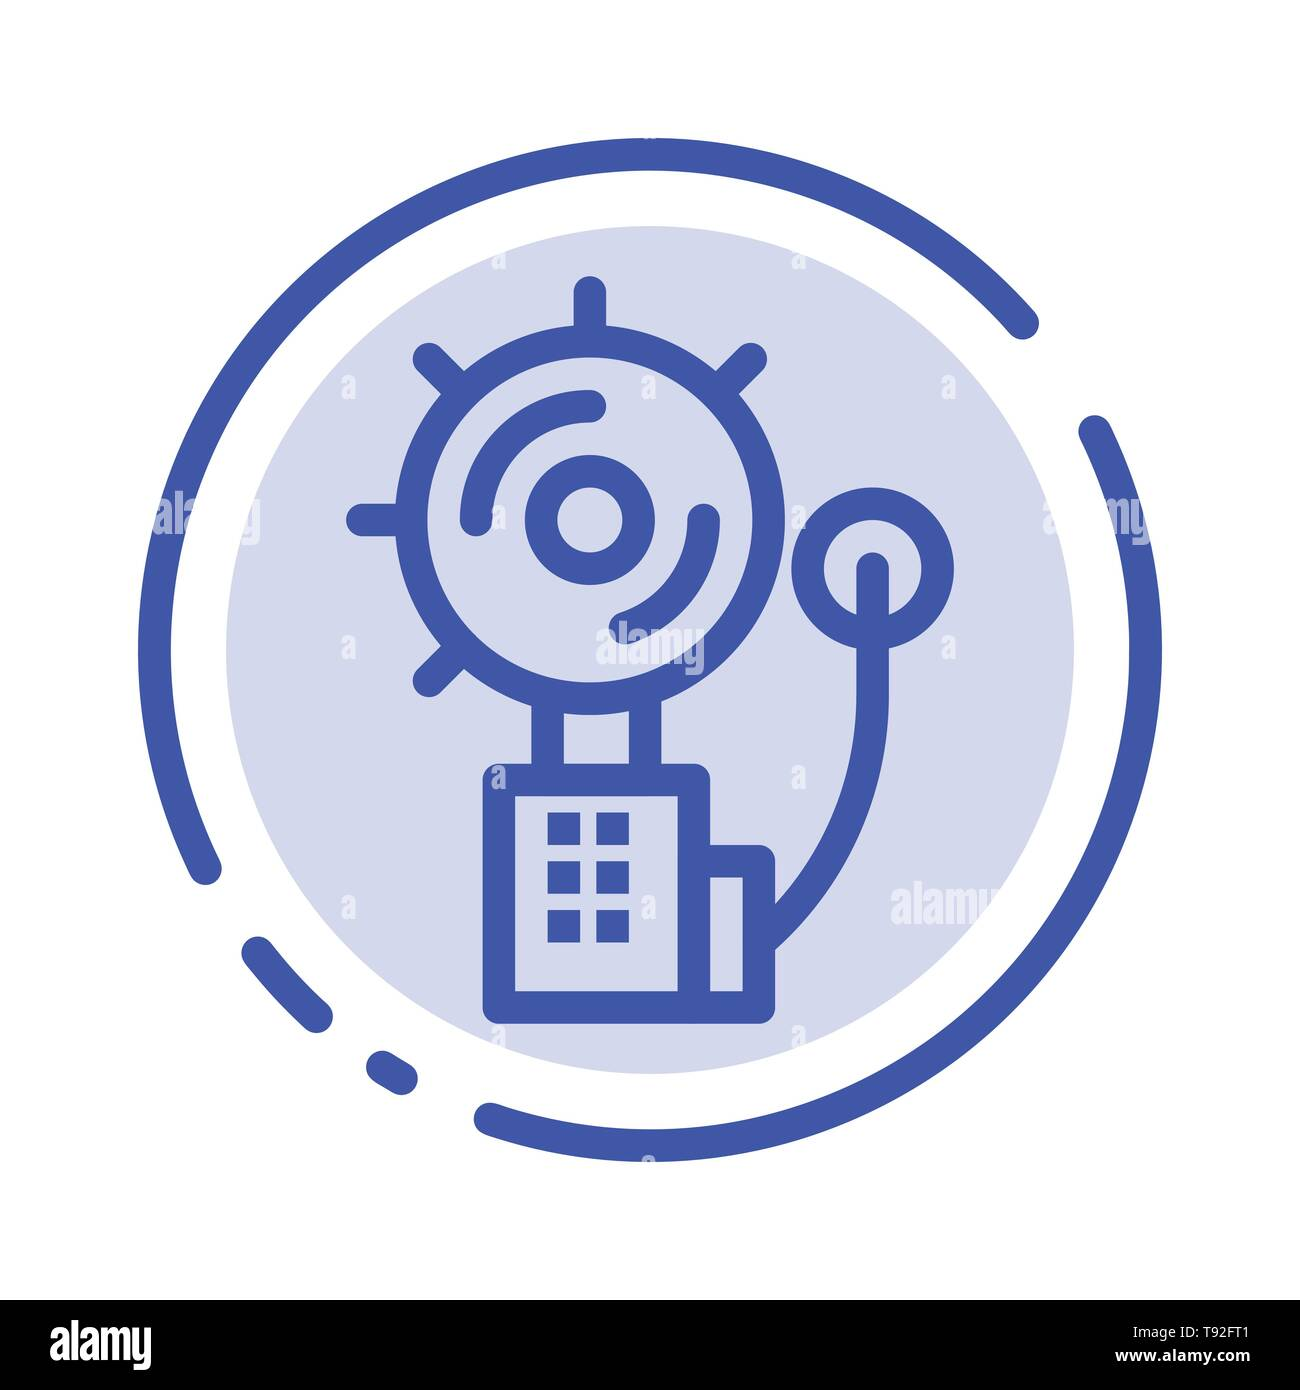 Alarm, Alert, Bell, Fire, Intruder Blue Dotted Line Line Icon - Stock Image